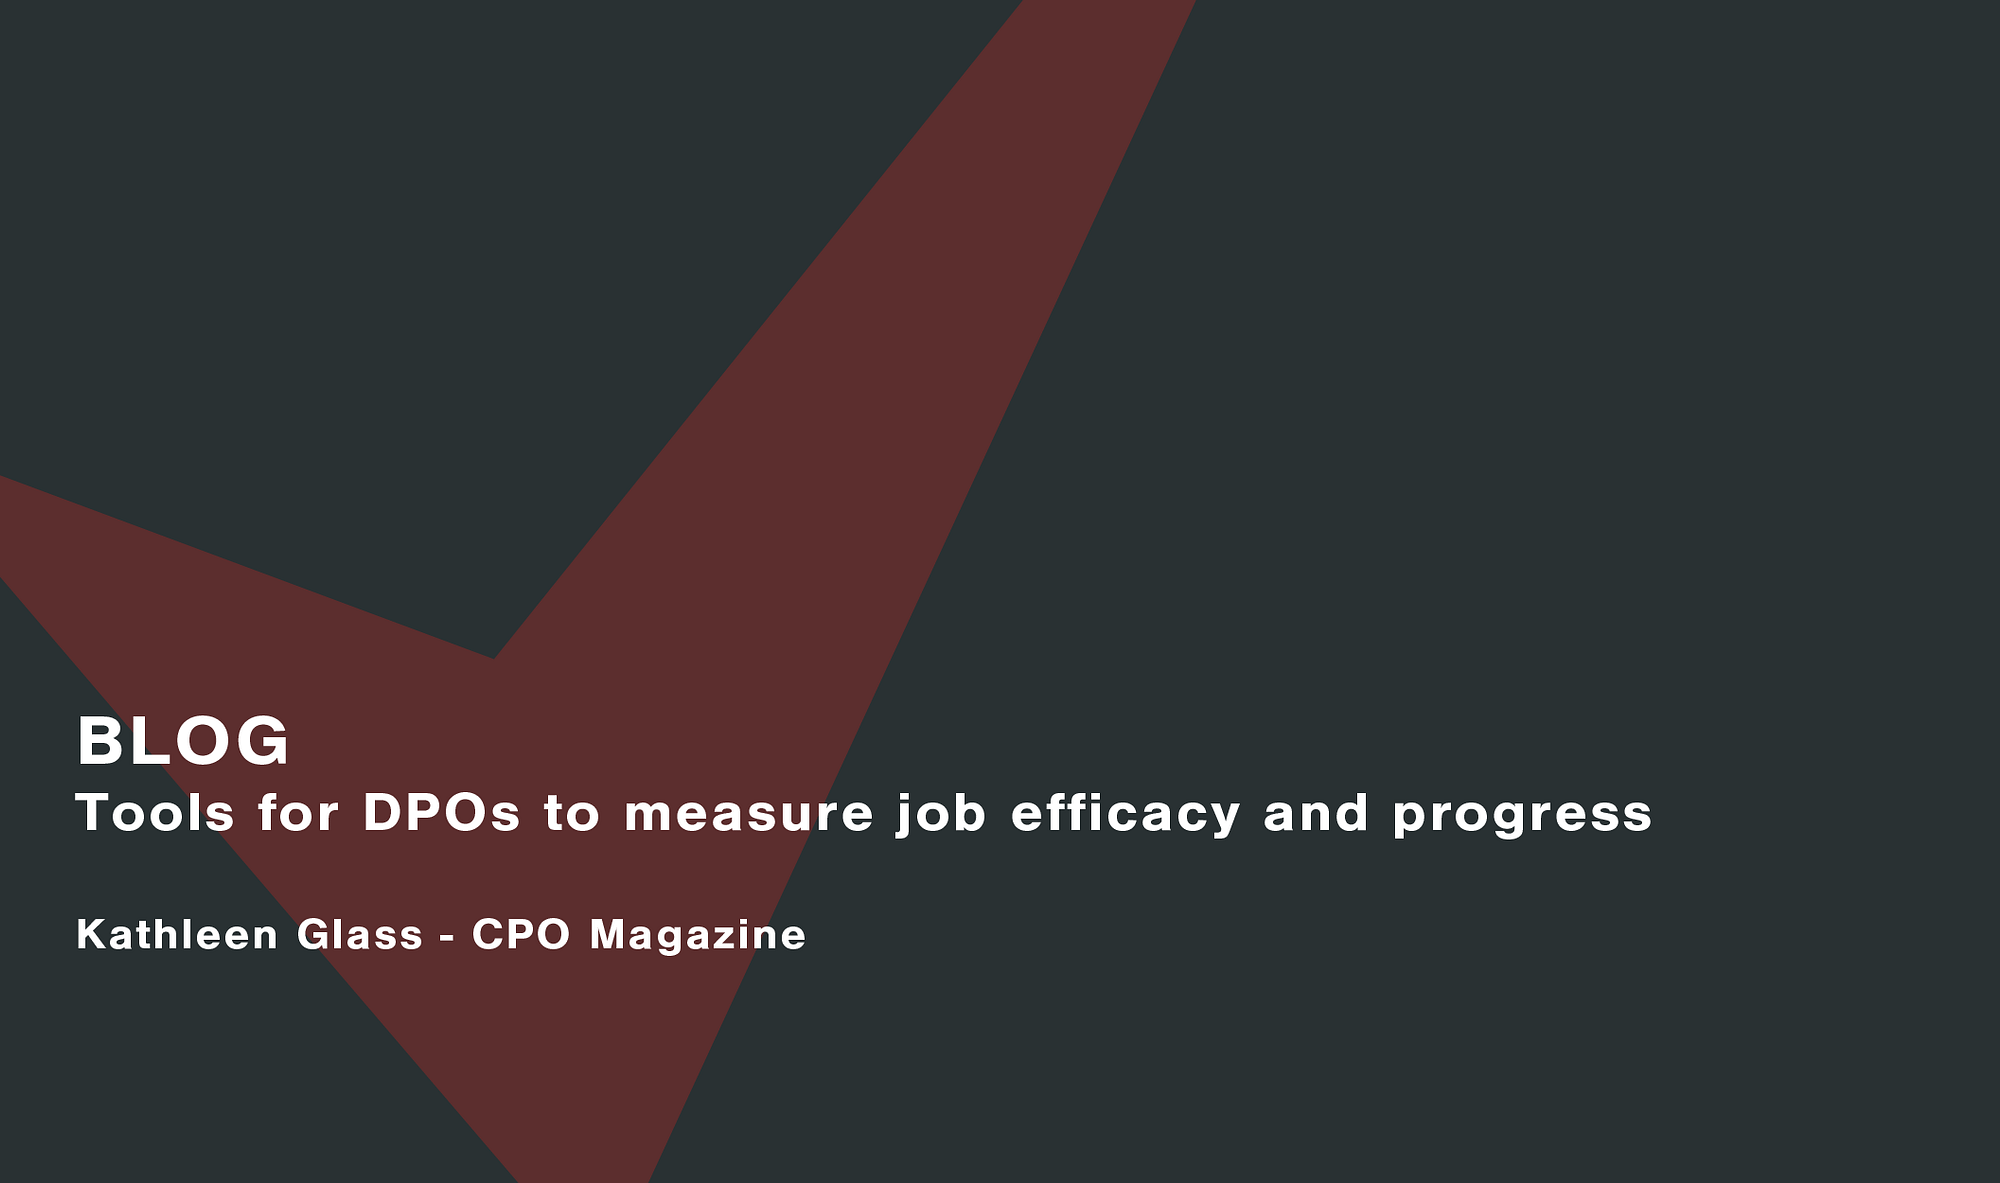 Tools-for-DPOs-to-measure-job-efficacy-and-progress